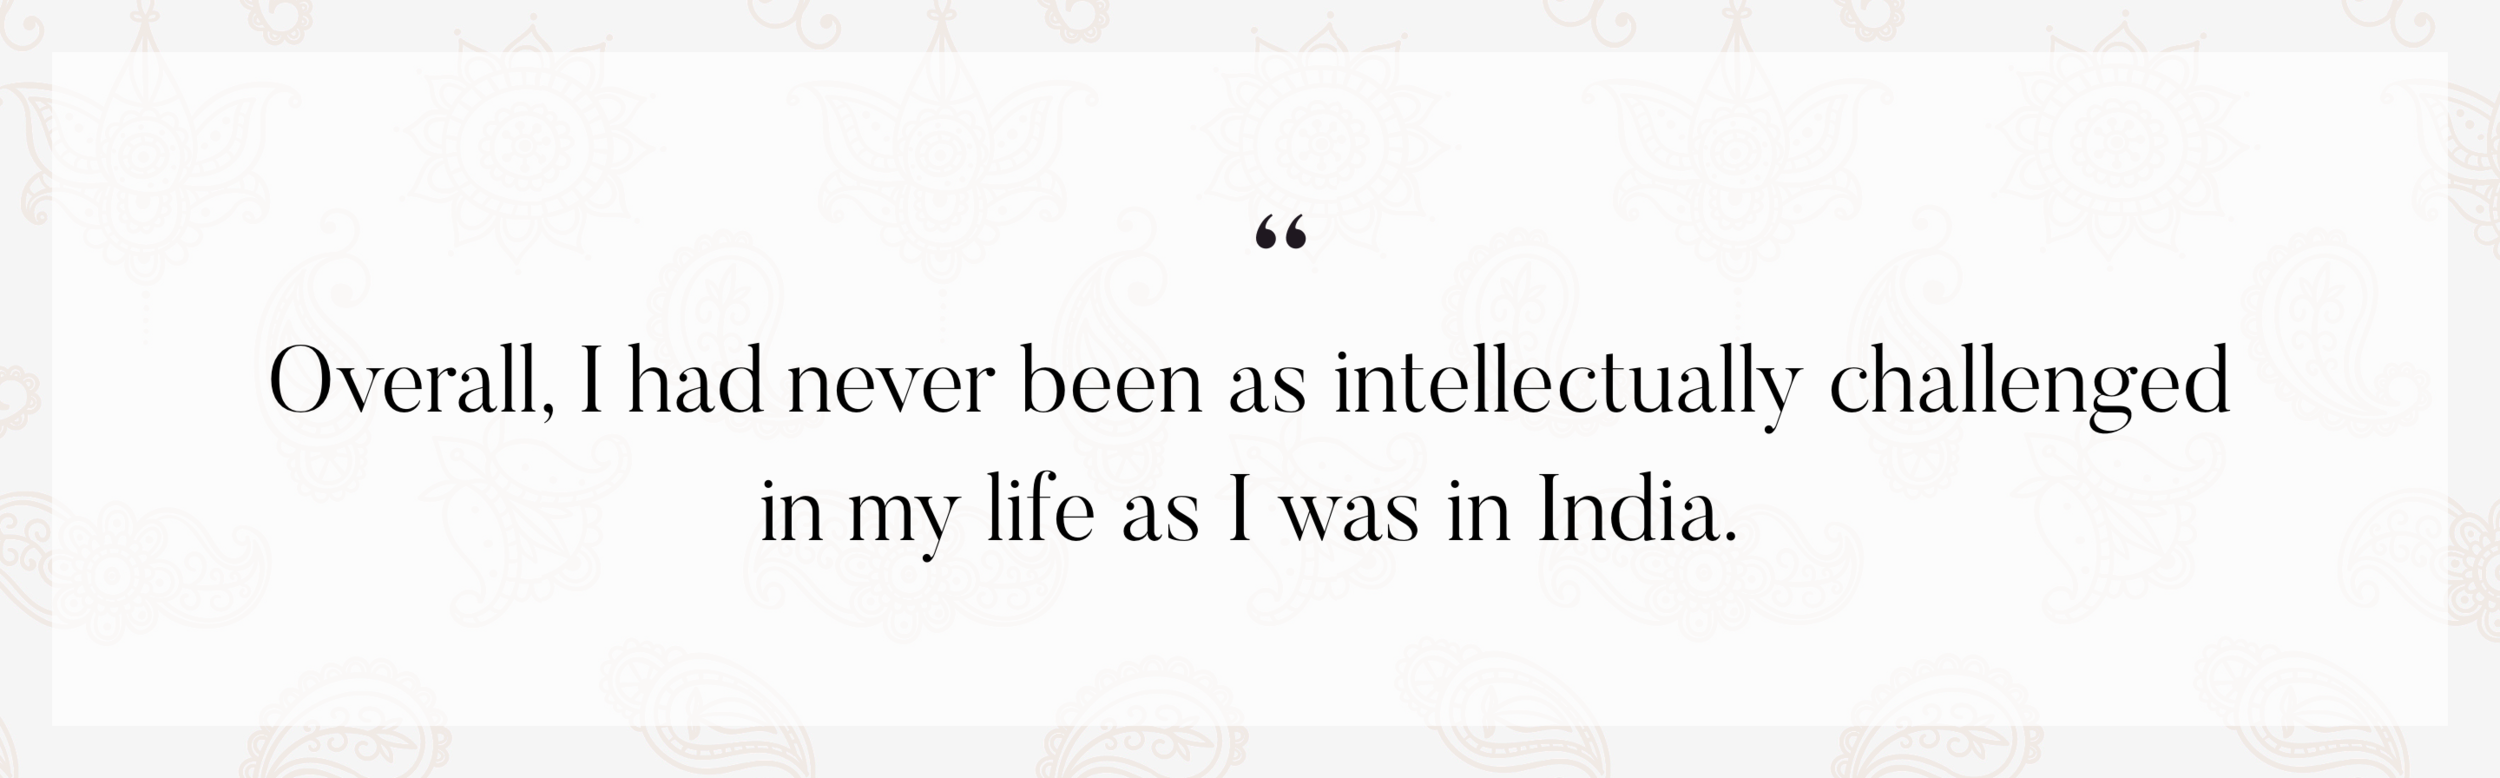 Anandhi quote.png